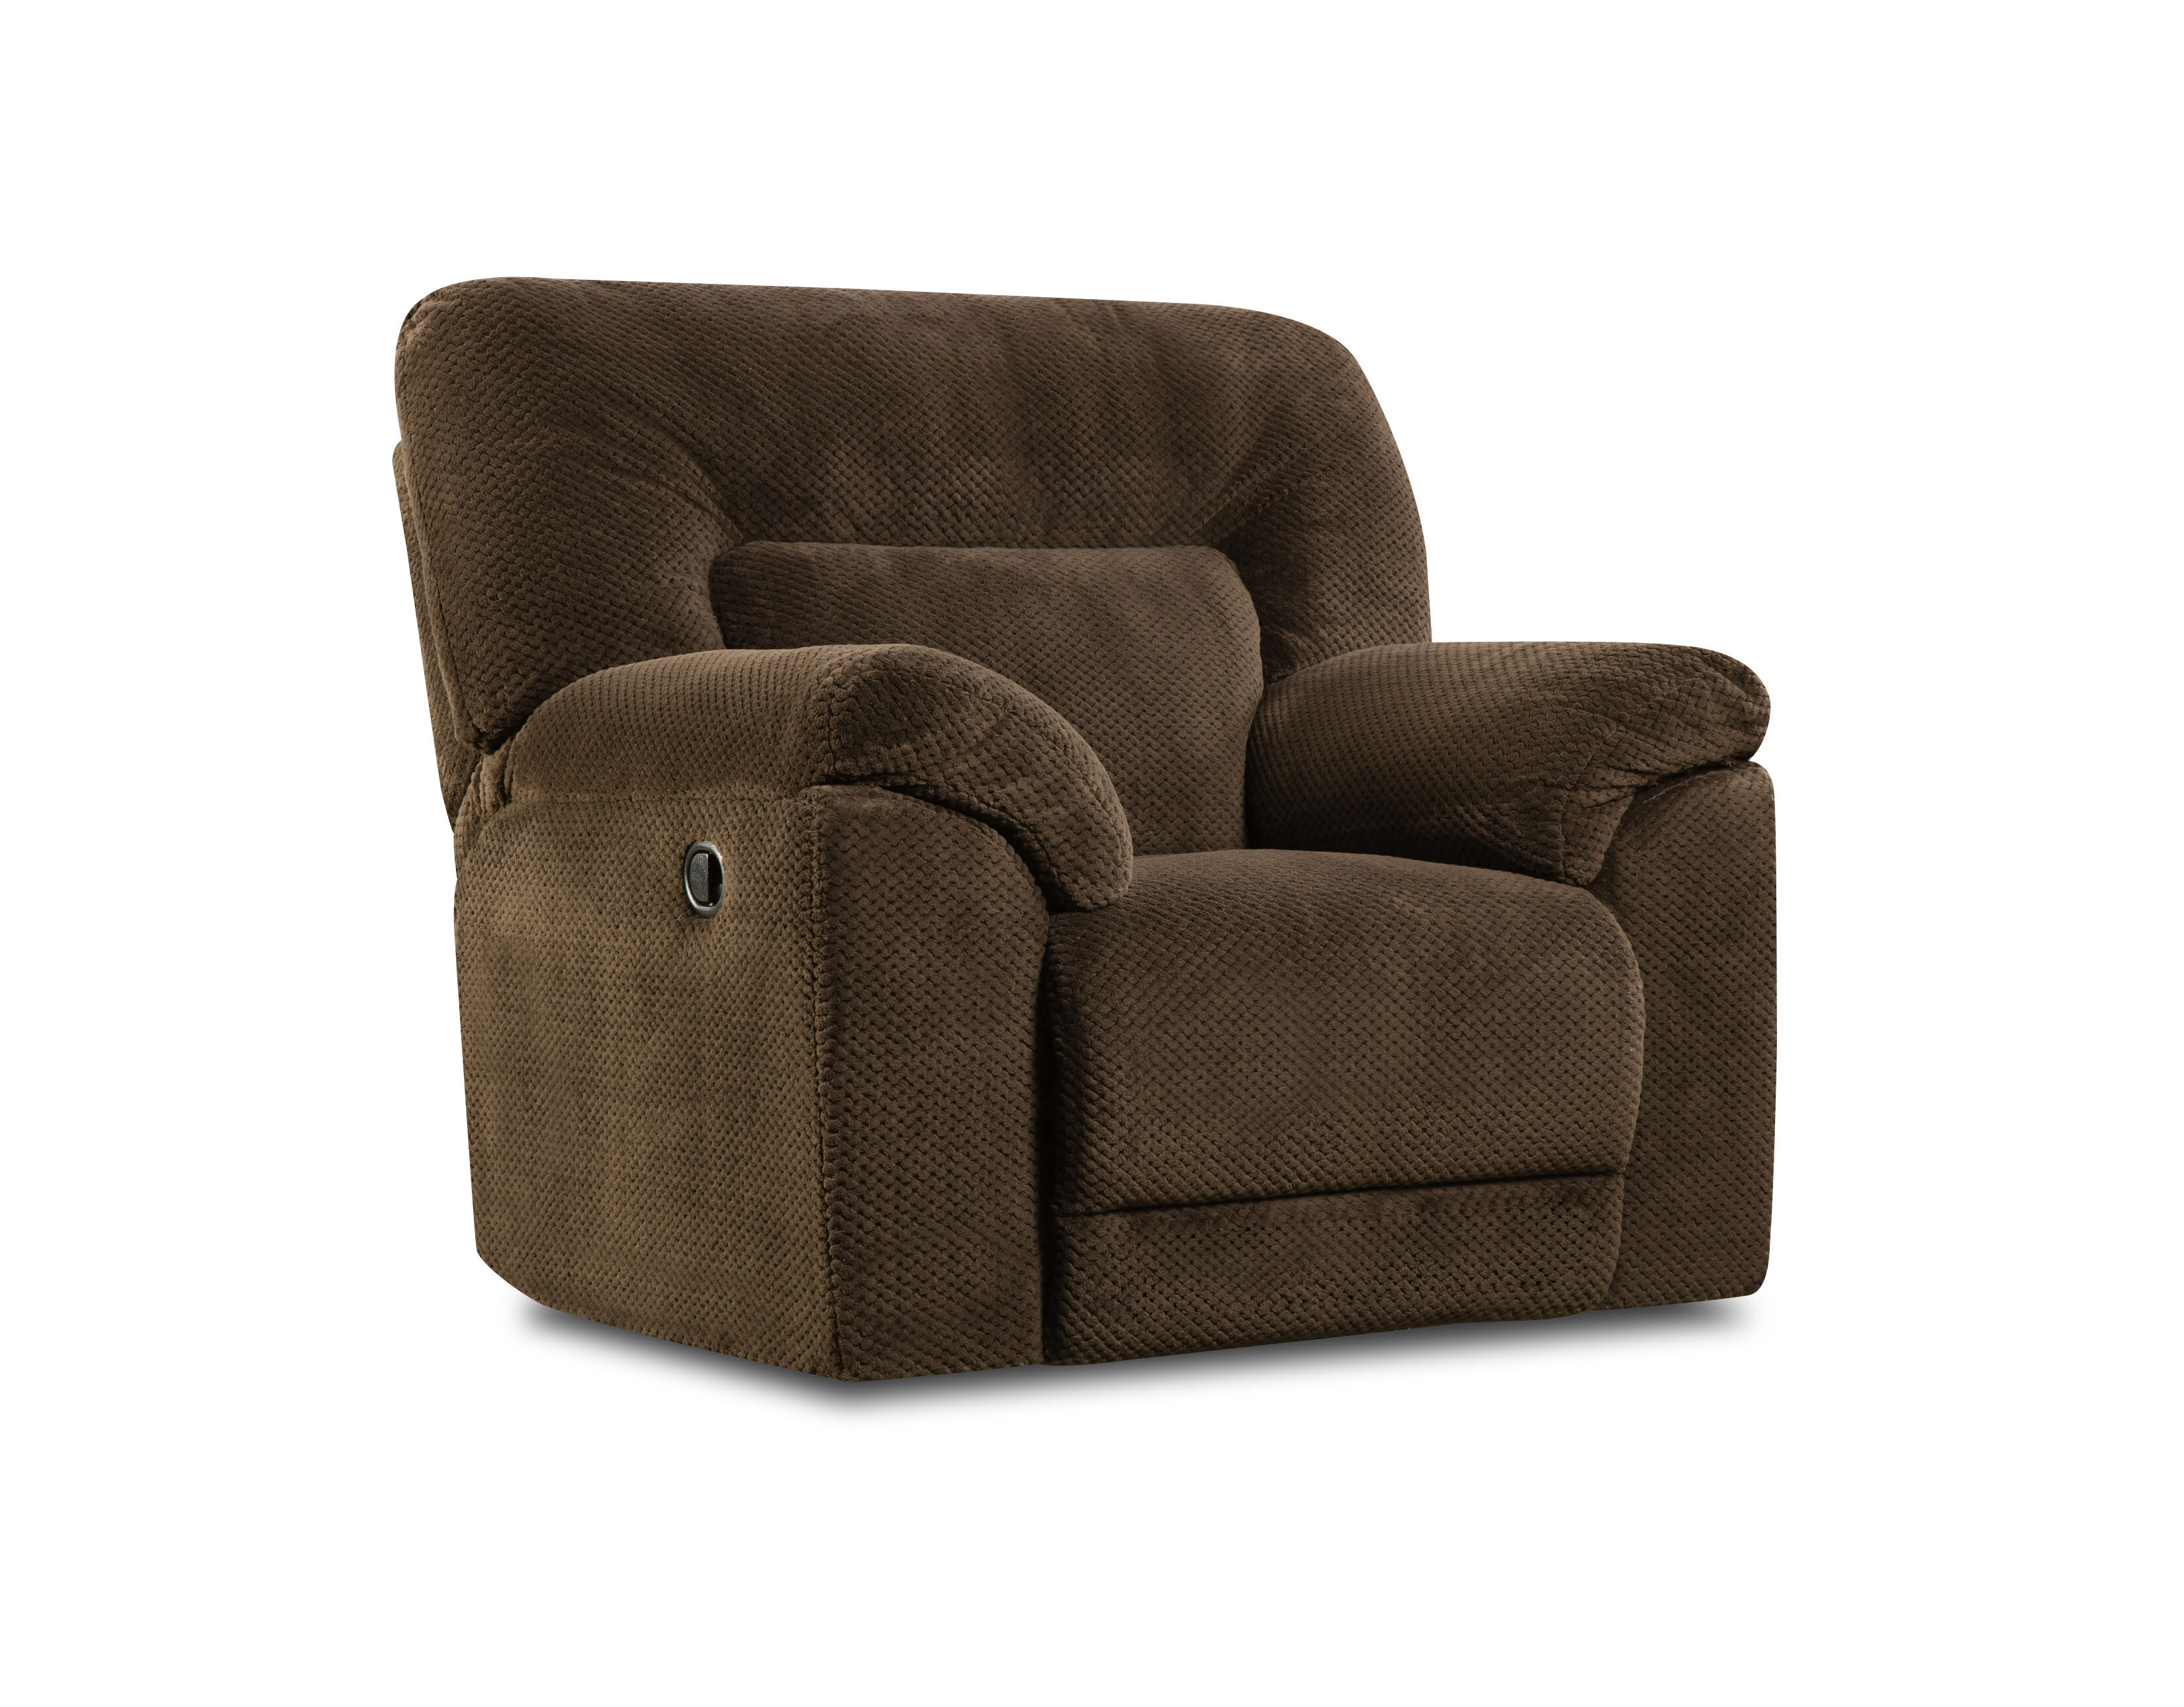 Darby Home Co Radcliff Manual Swivel Glider Recliner Reviews Wayfair